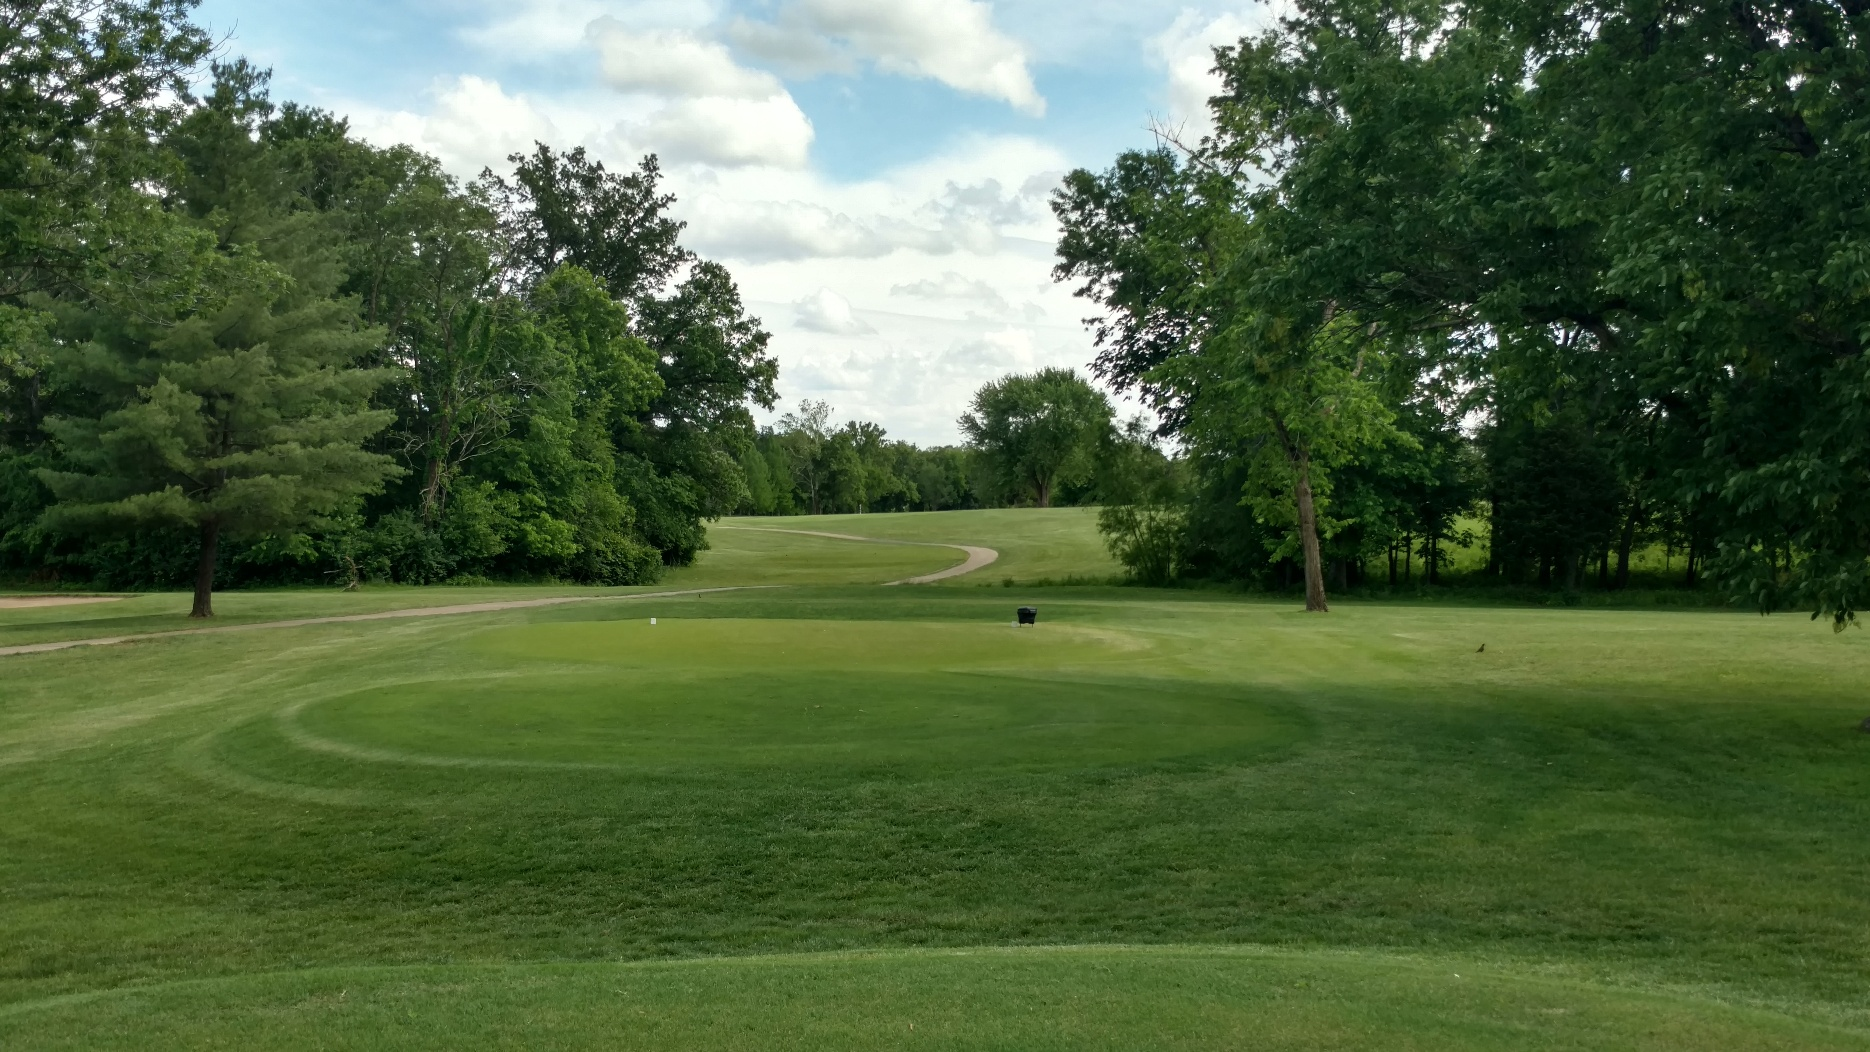 Lake of the Woods Golf Course (Columbia, MO on 05/23/17 ...